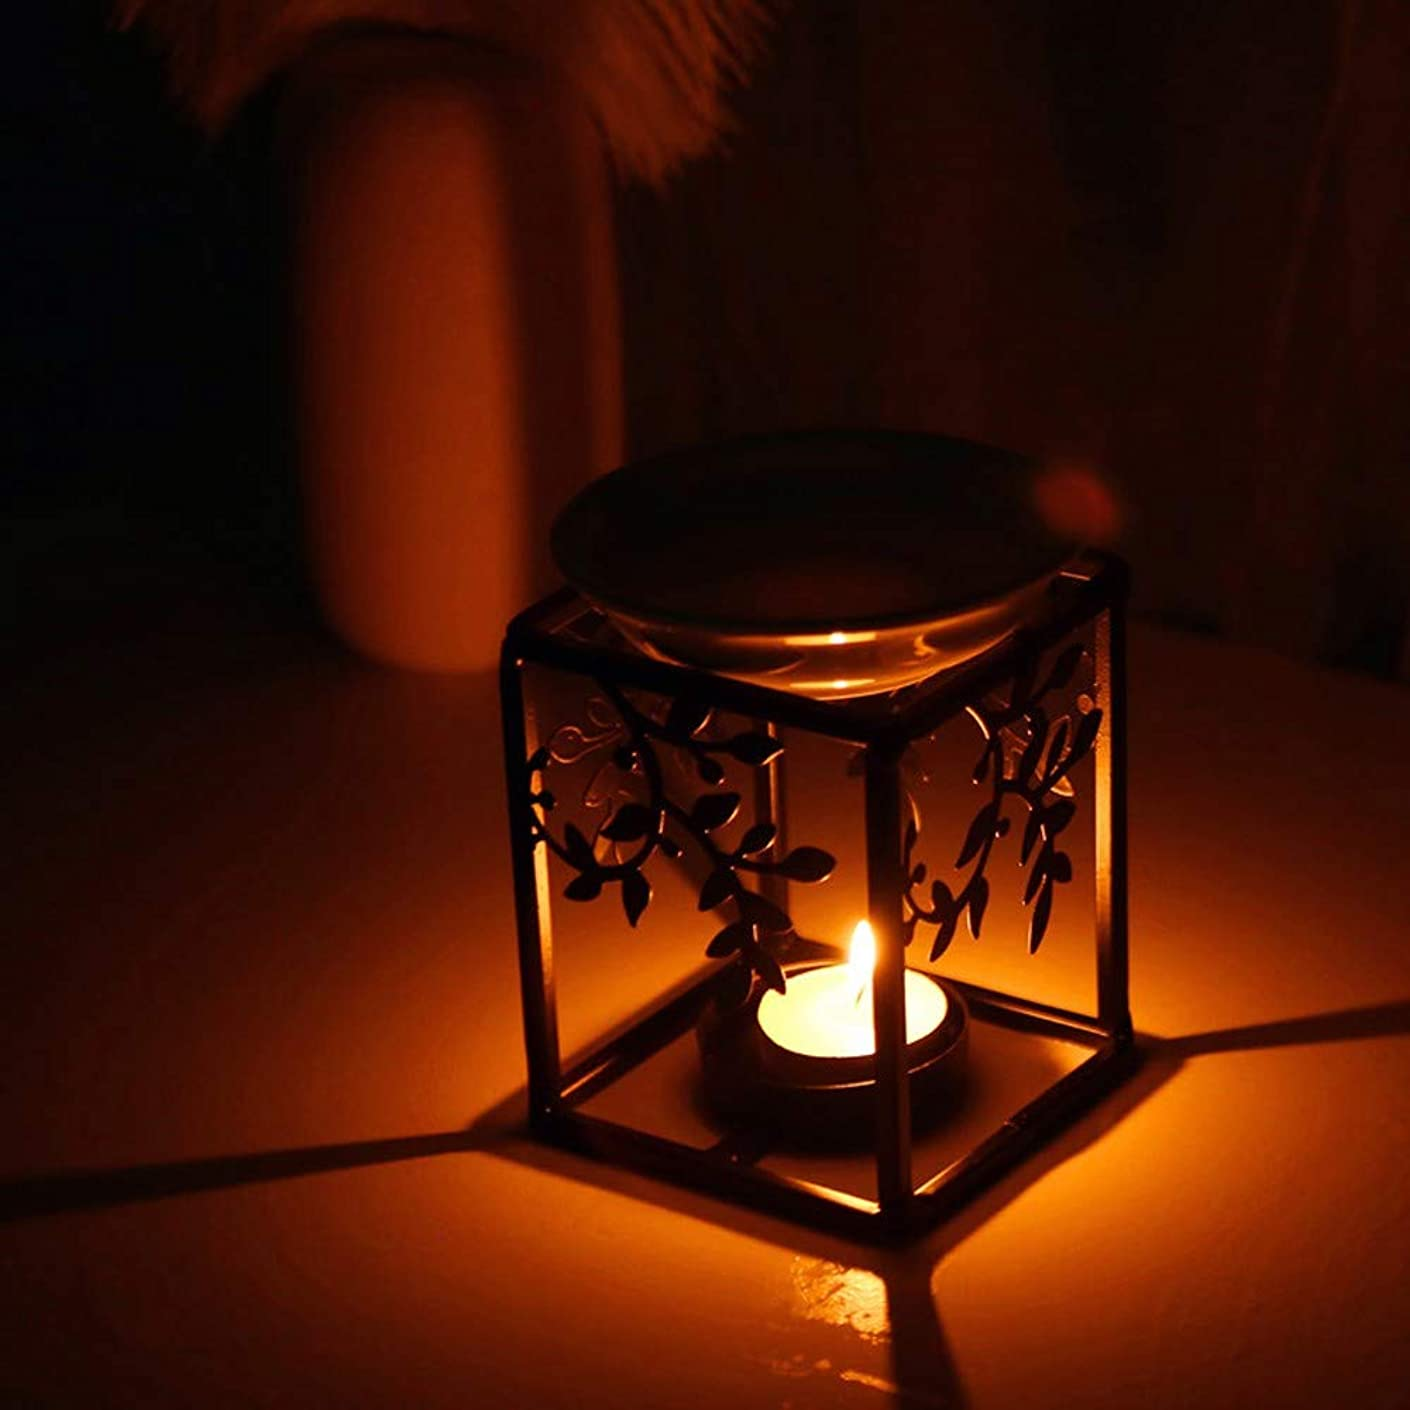 Gunel Stainless Steel Holder Essential Oil Burner Aromatherapy Wax Candle Tart Burner Warmer Diffuser Aroma Candle Warmers Decoration for Parlor Bedroom (Black)